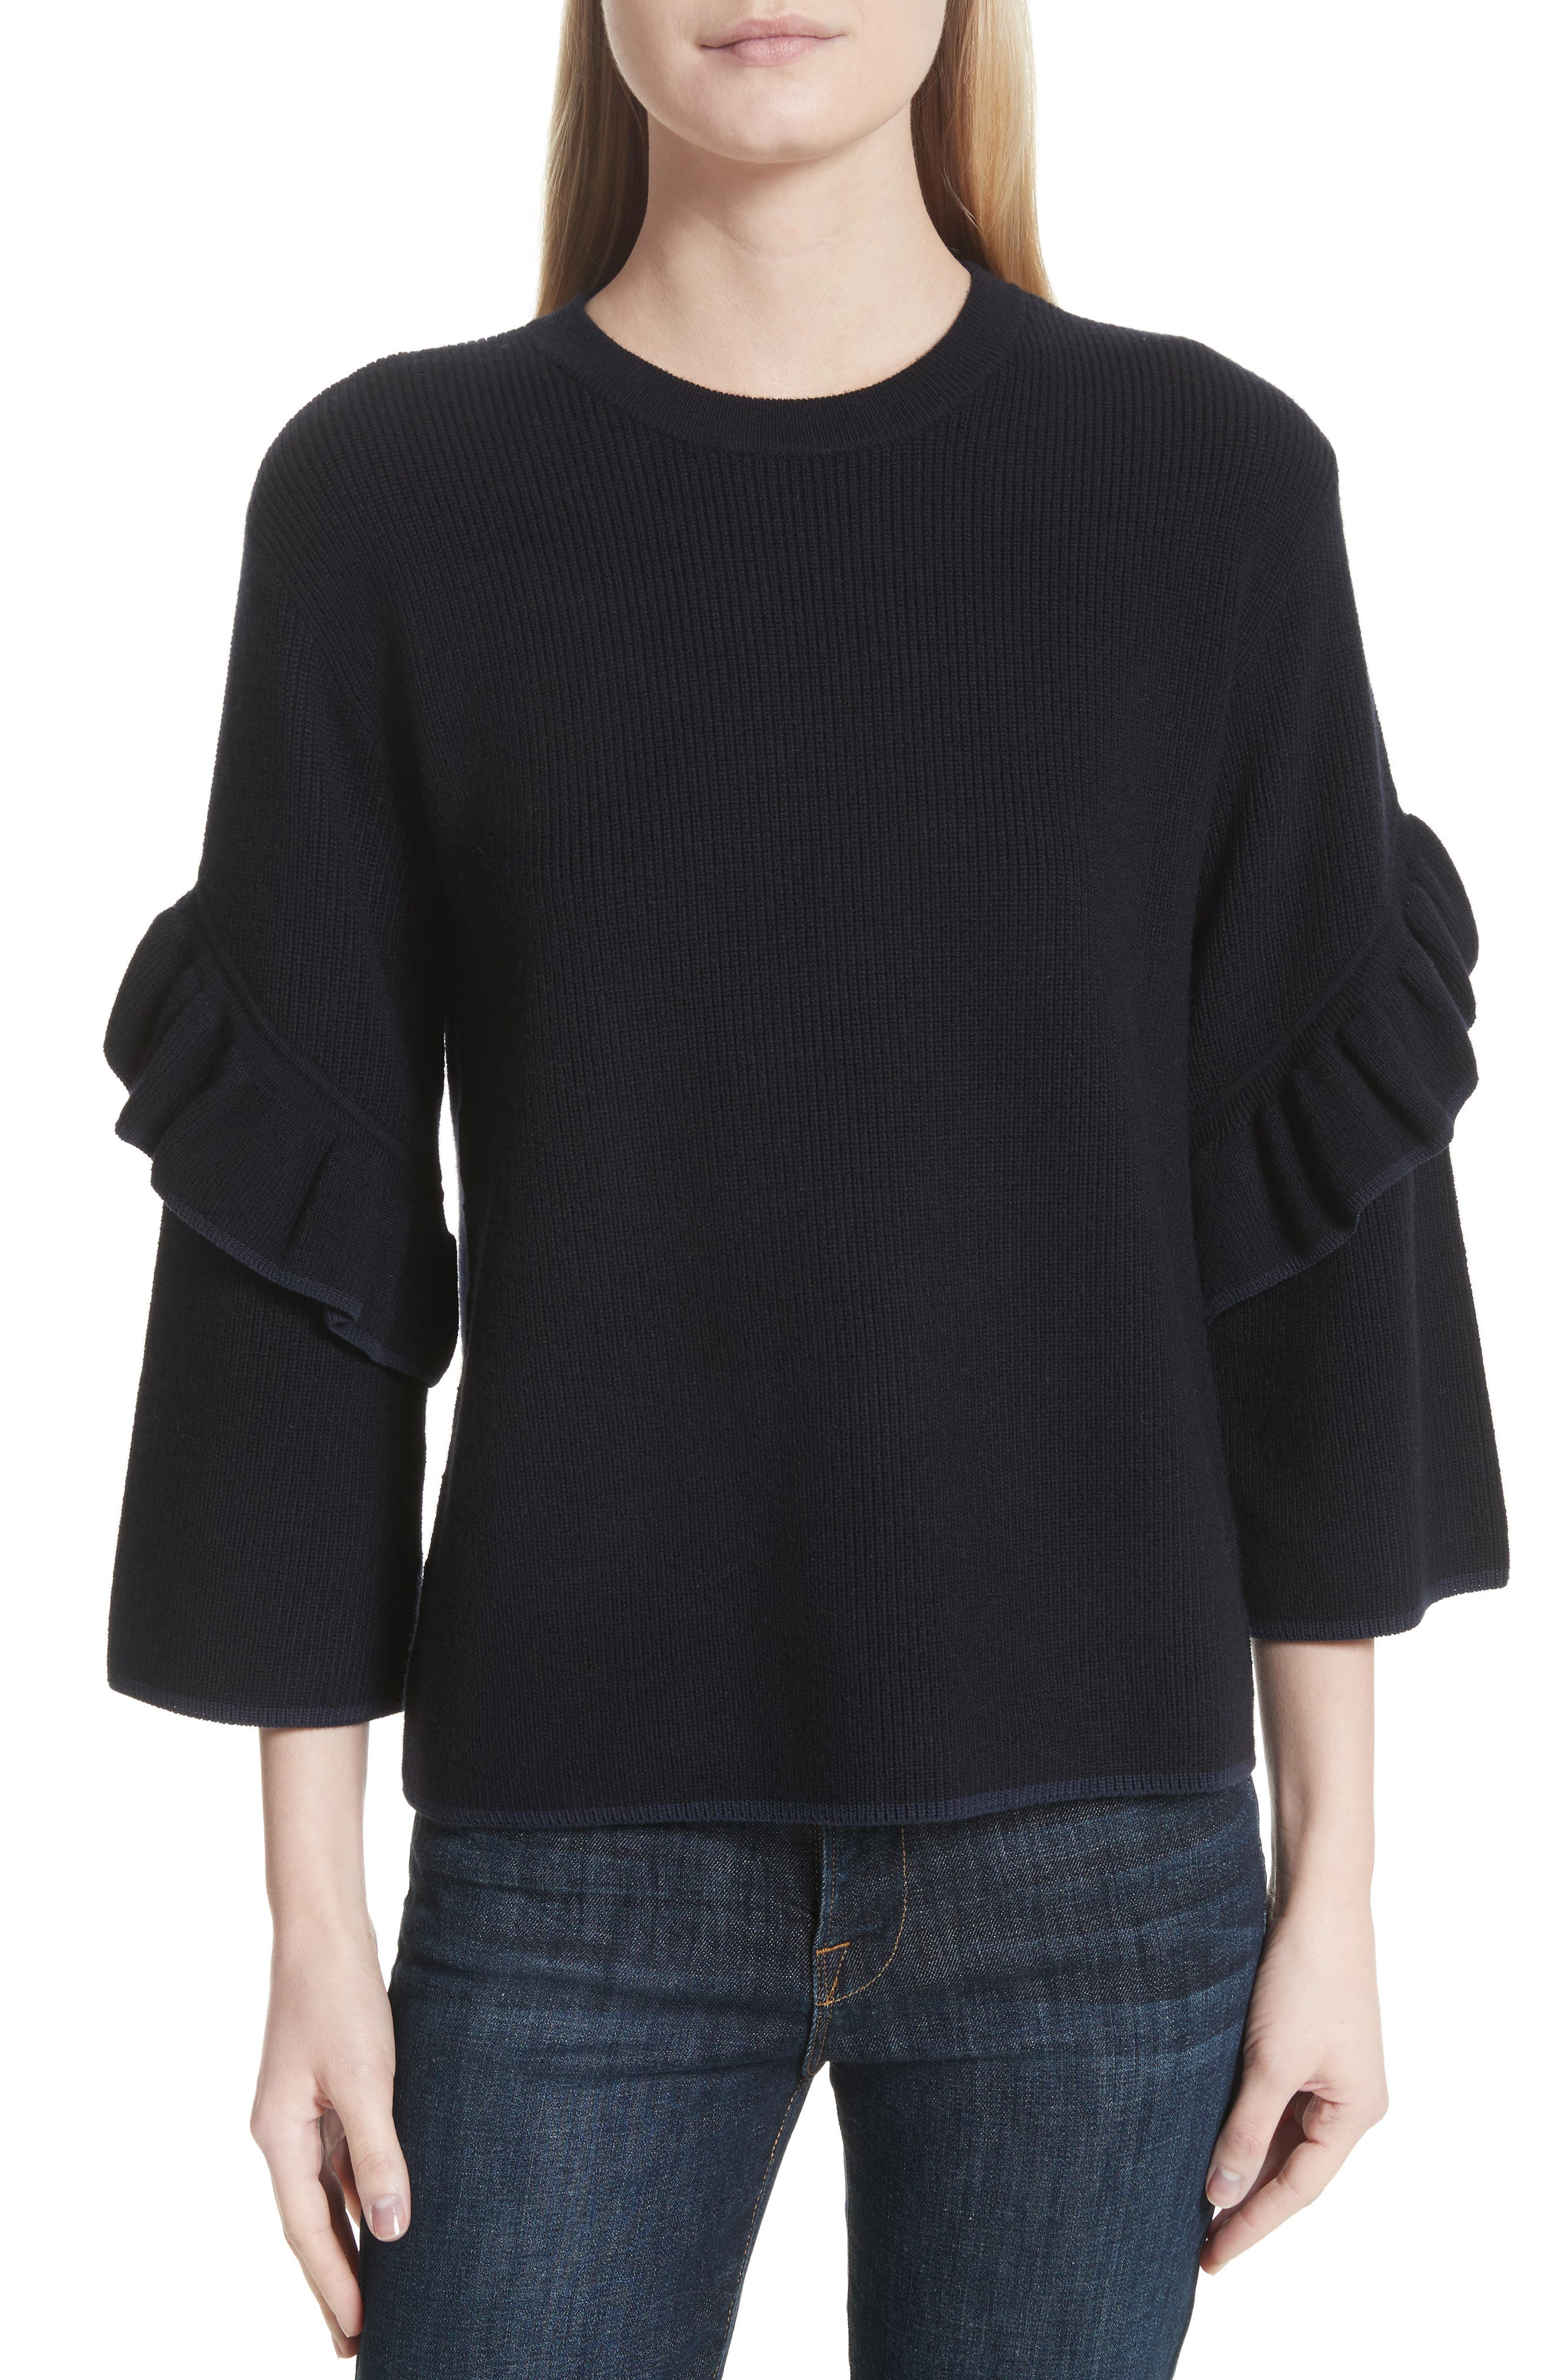 Alternate Image 1 Selected - Tory Burch Ashley Ruffle Bell Sleeve Sweater